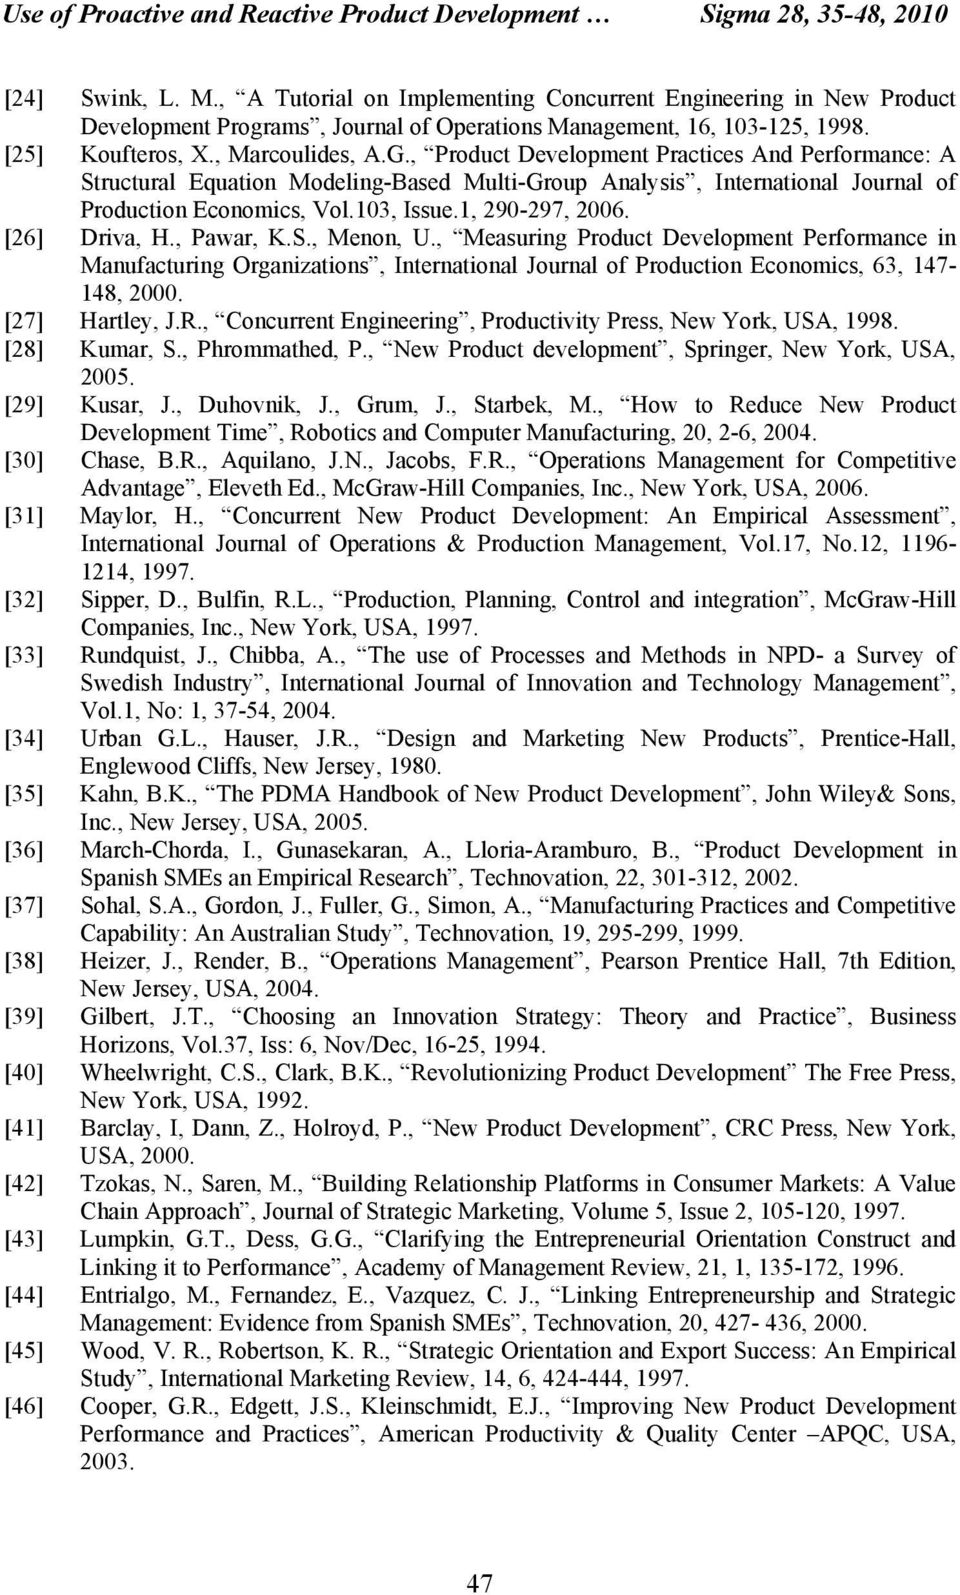 , Product Development Practices And Performance: A Structural Equation Modeling-Based Multi-Group Analysis, International Journal of Production Economics, Vol.103, Issue.1, 290-297, 2006.